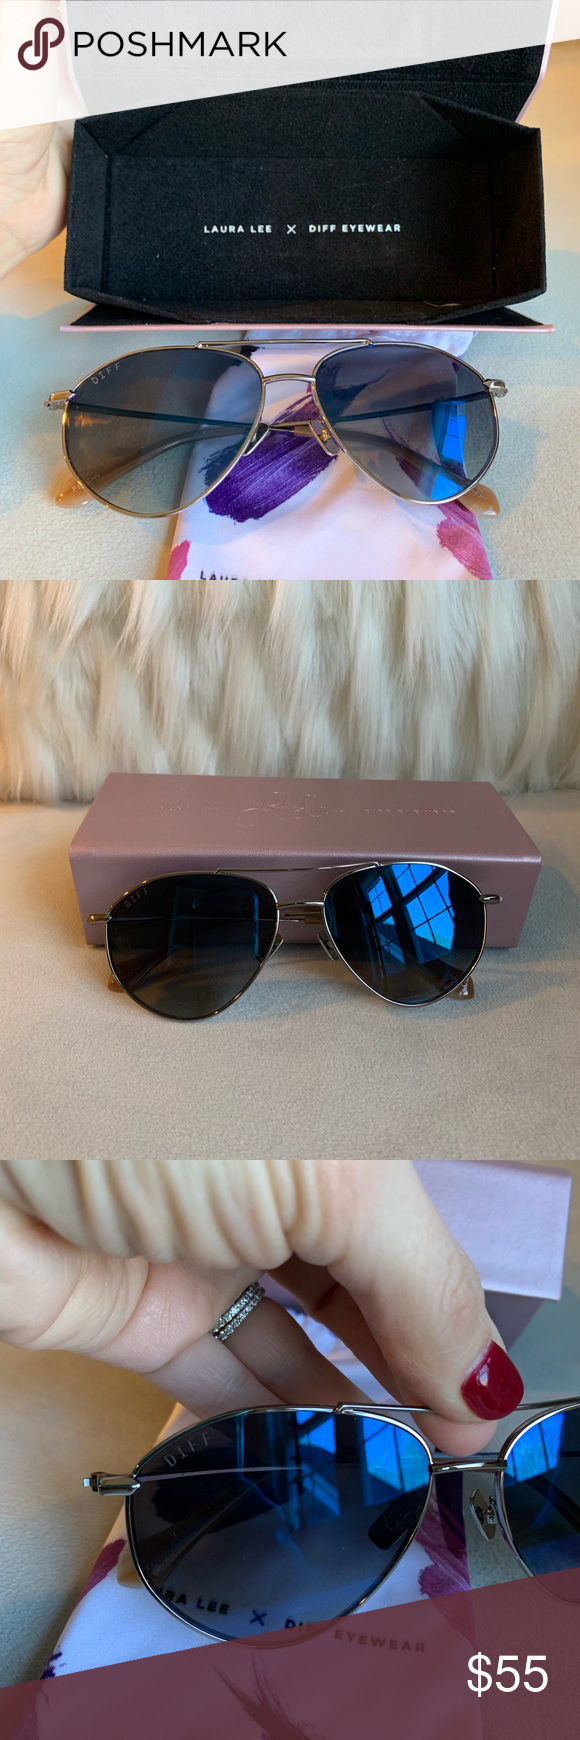 a8b2251720b7f Diff x Laura Lee Sunglasses Peachy by Laura Lee in gunmetal Perfect  condition never worn.